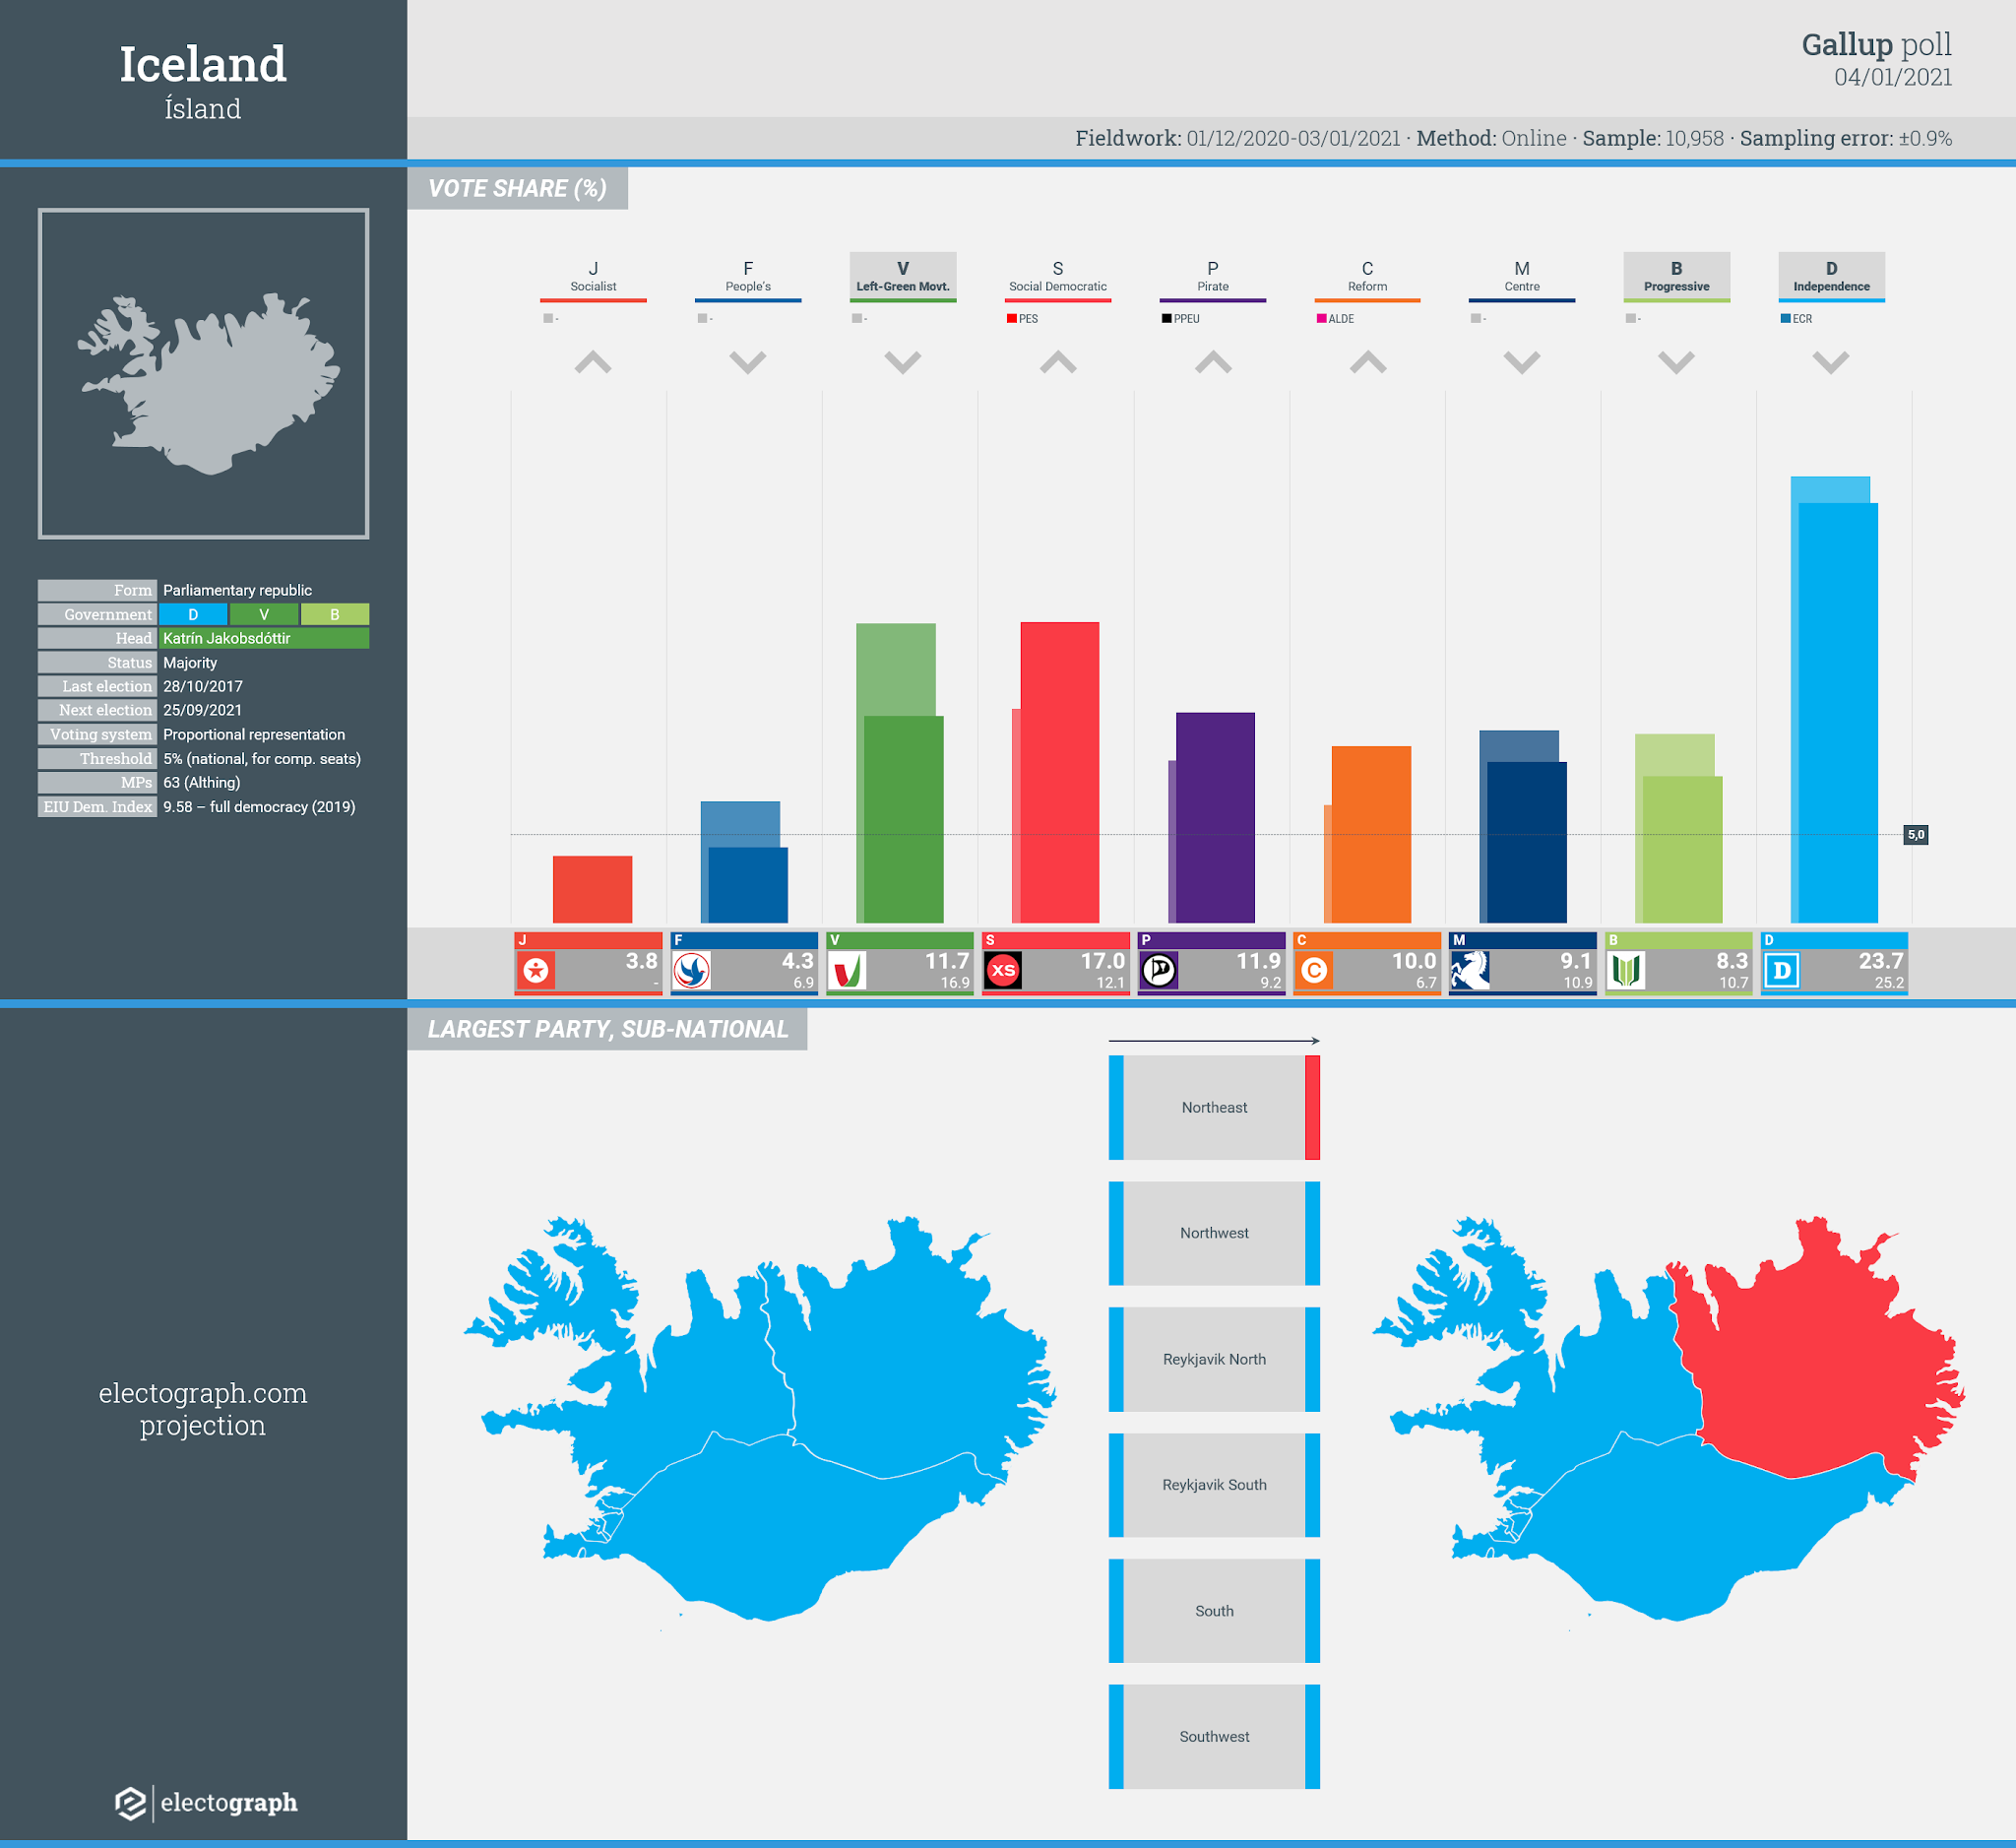 ICELAND: Gallup poll chart, 4 January 2021